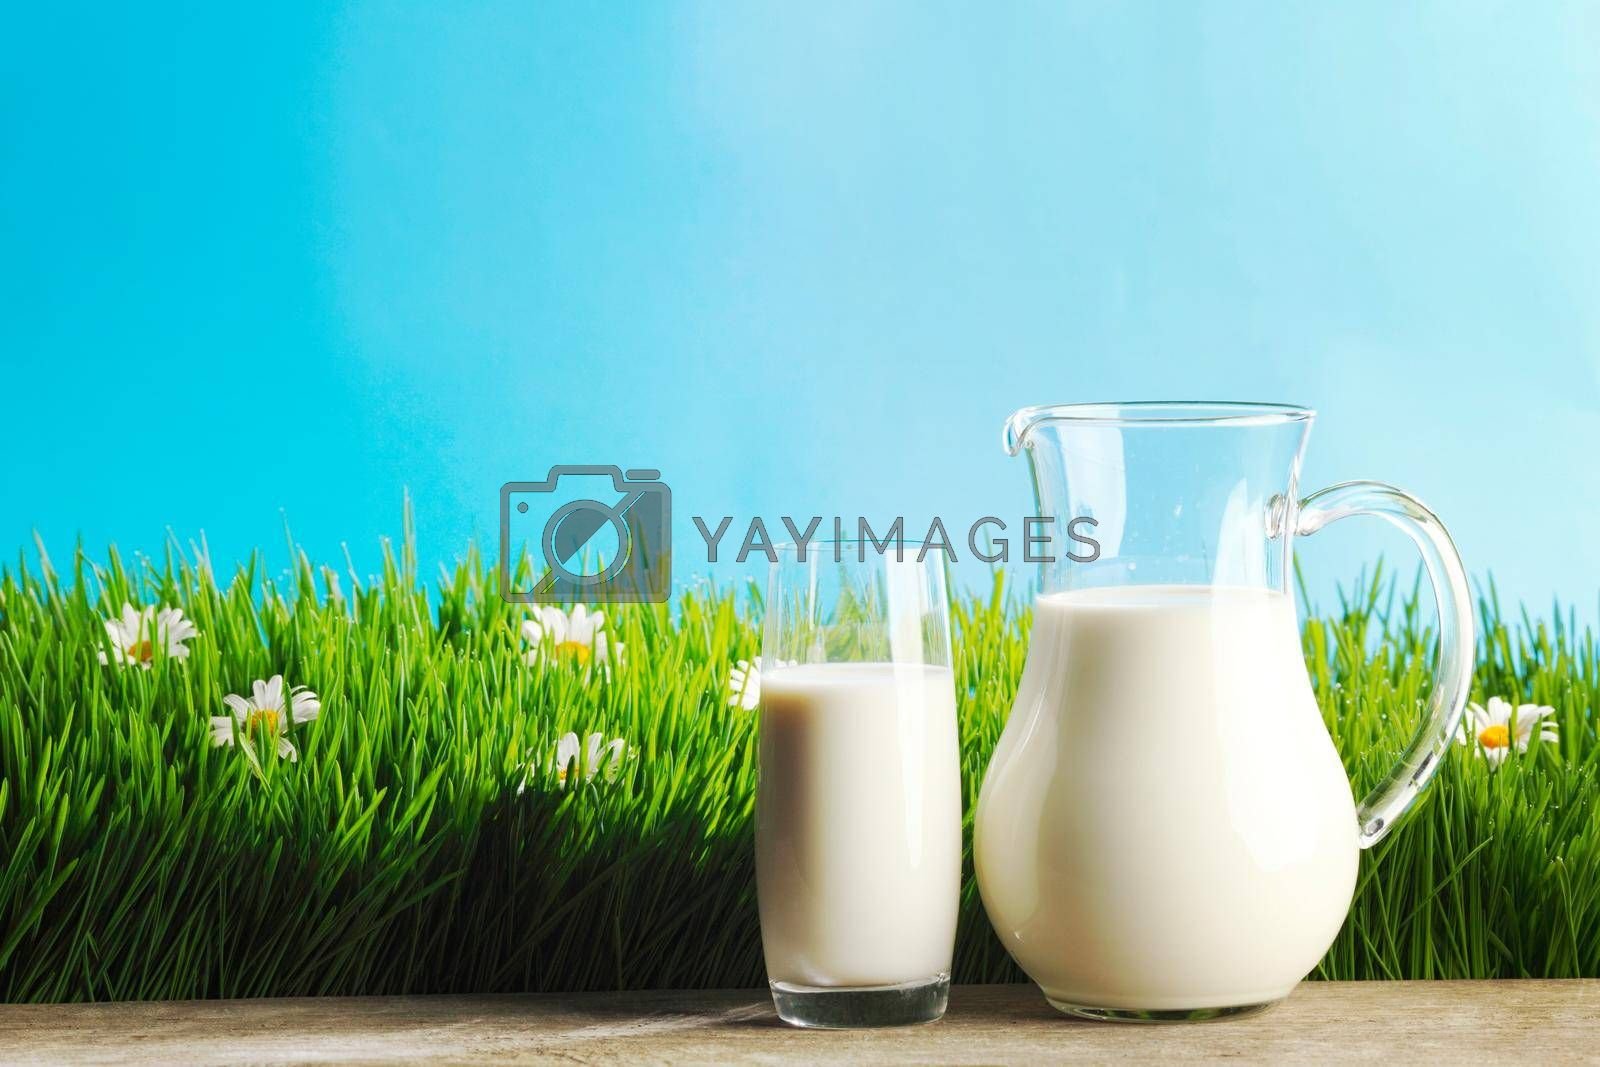 Royalty free image of Glass of milk and jar on flower meadow by Yellowj